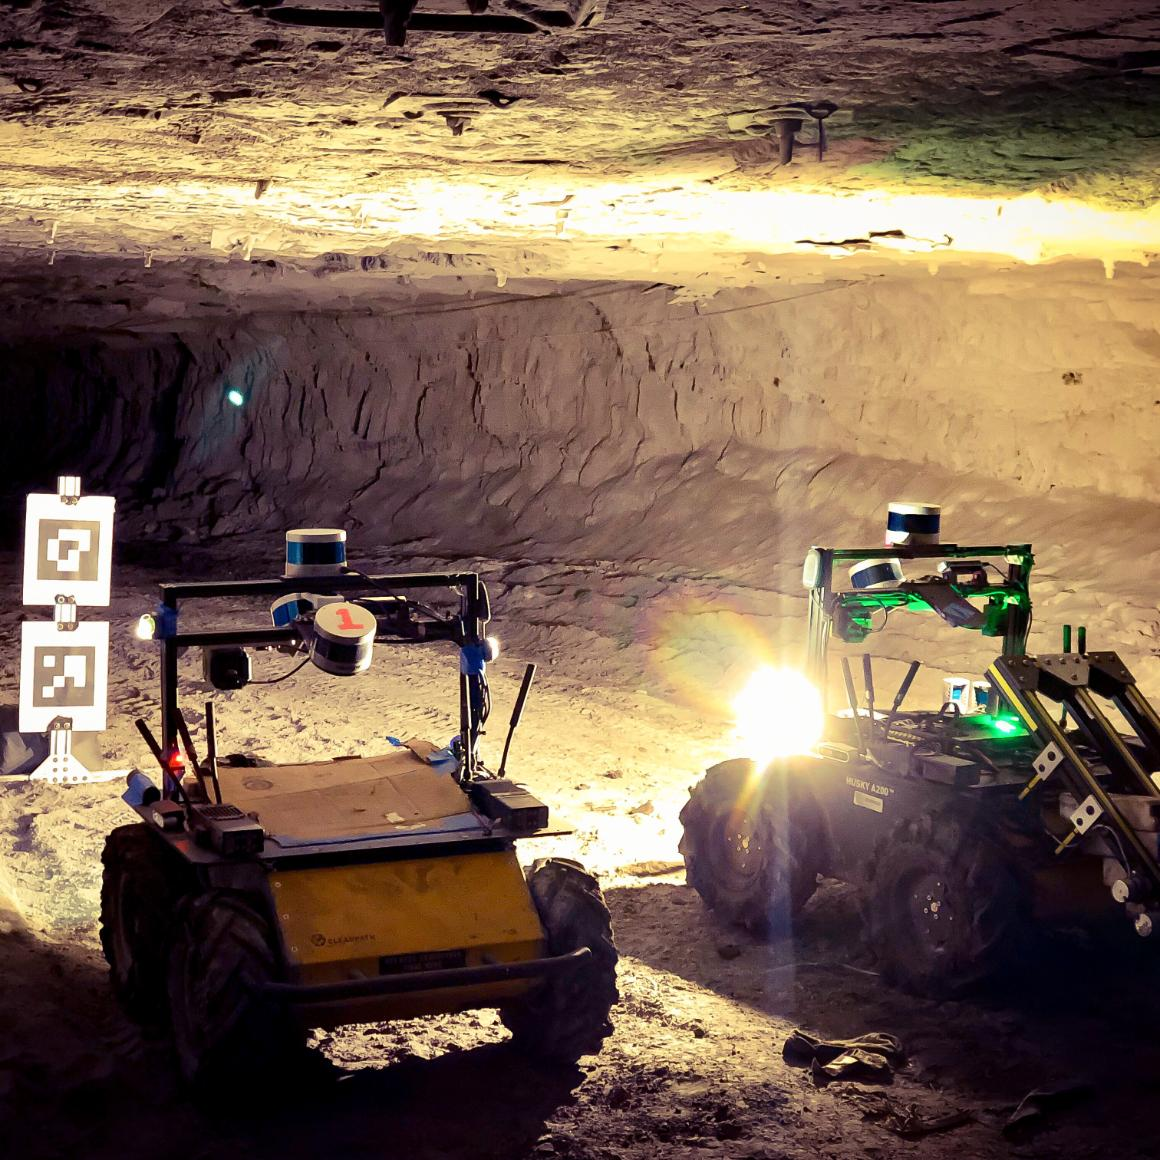 Two autonomous robots locate a target in a tunnel image link to story